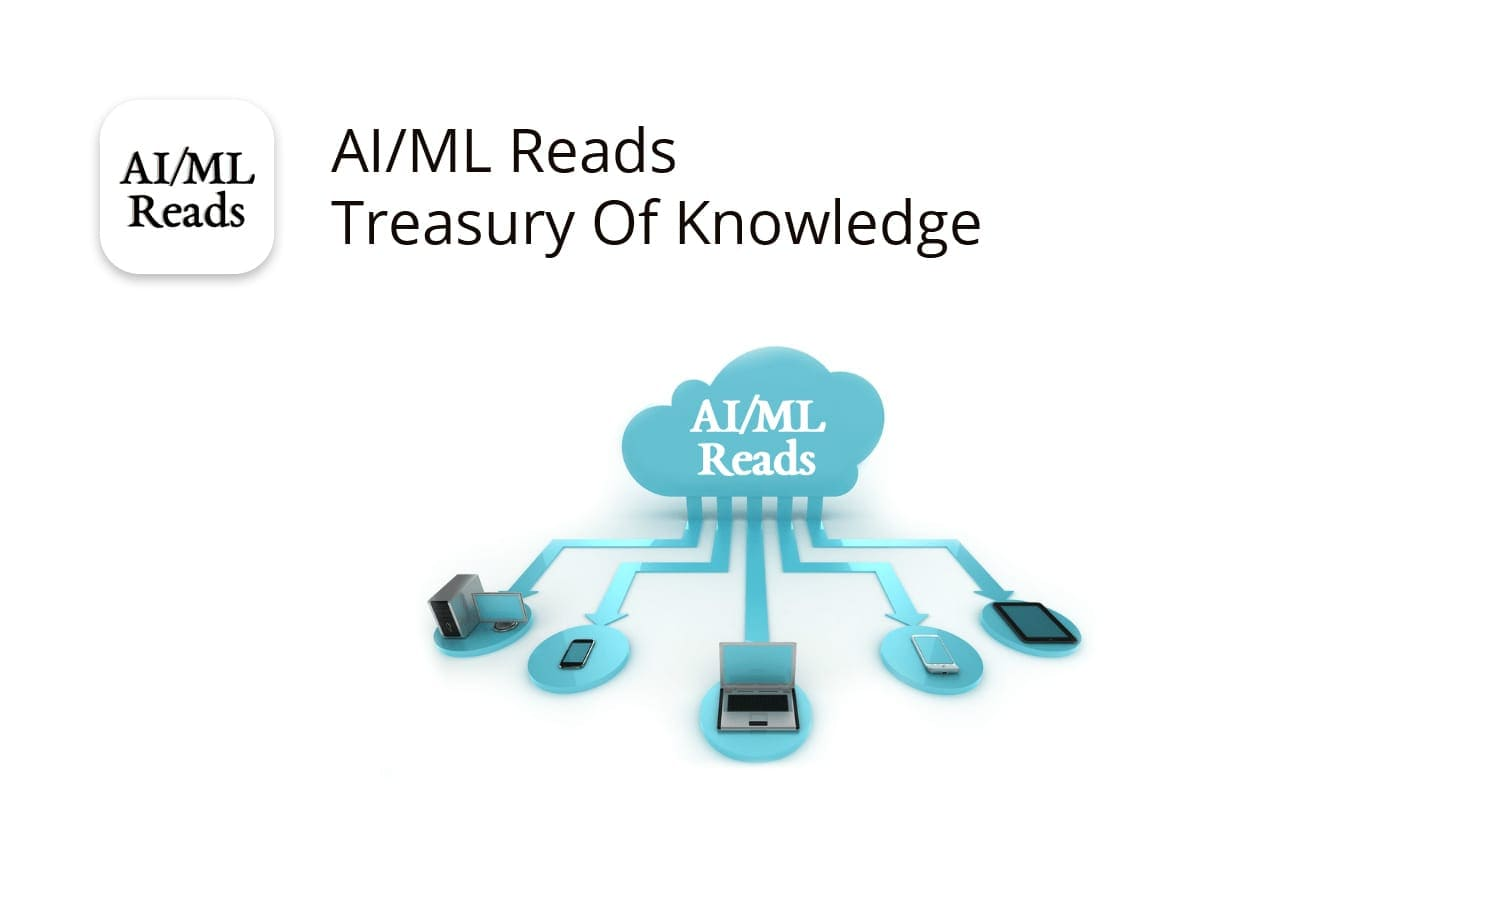 AI/ML Reads